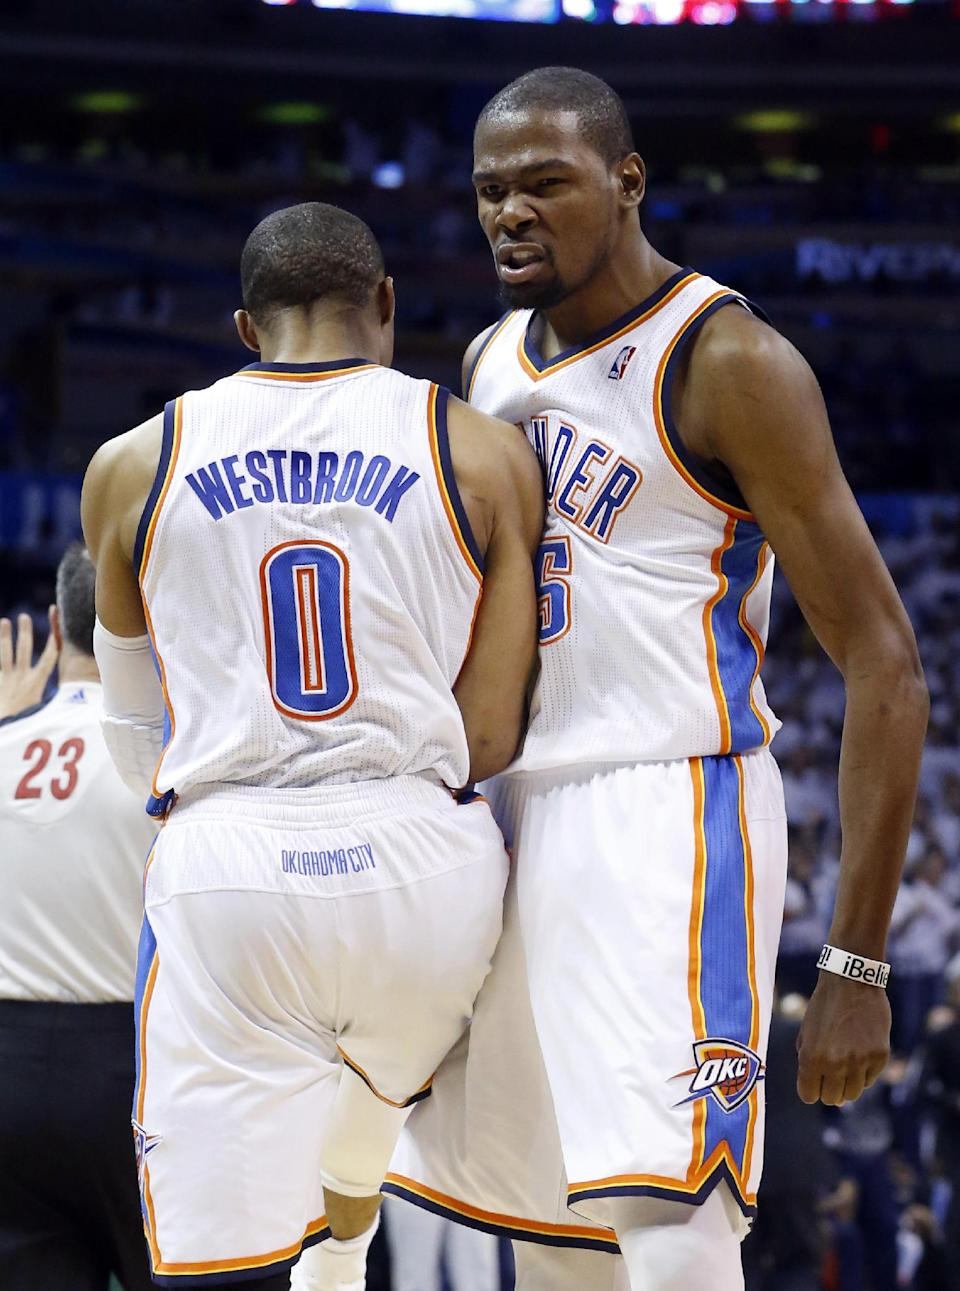 Oklahoma City Thunder forward Kevin Durant (35) bumps chests with teammate Russell Westbrook (0) in the third quarter of Game 2 in their first-round NBA basketball playoff series against the Houston Rockets in Oklahoma City, Wednesday, April 24, 2013. Oklahoma City won 105-102. (AP Photo/Sue Ogrocki)